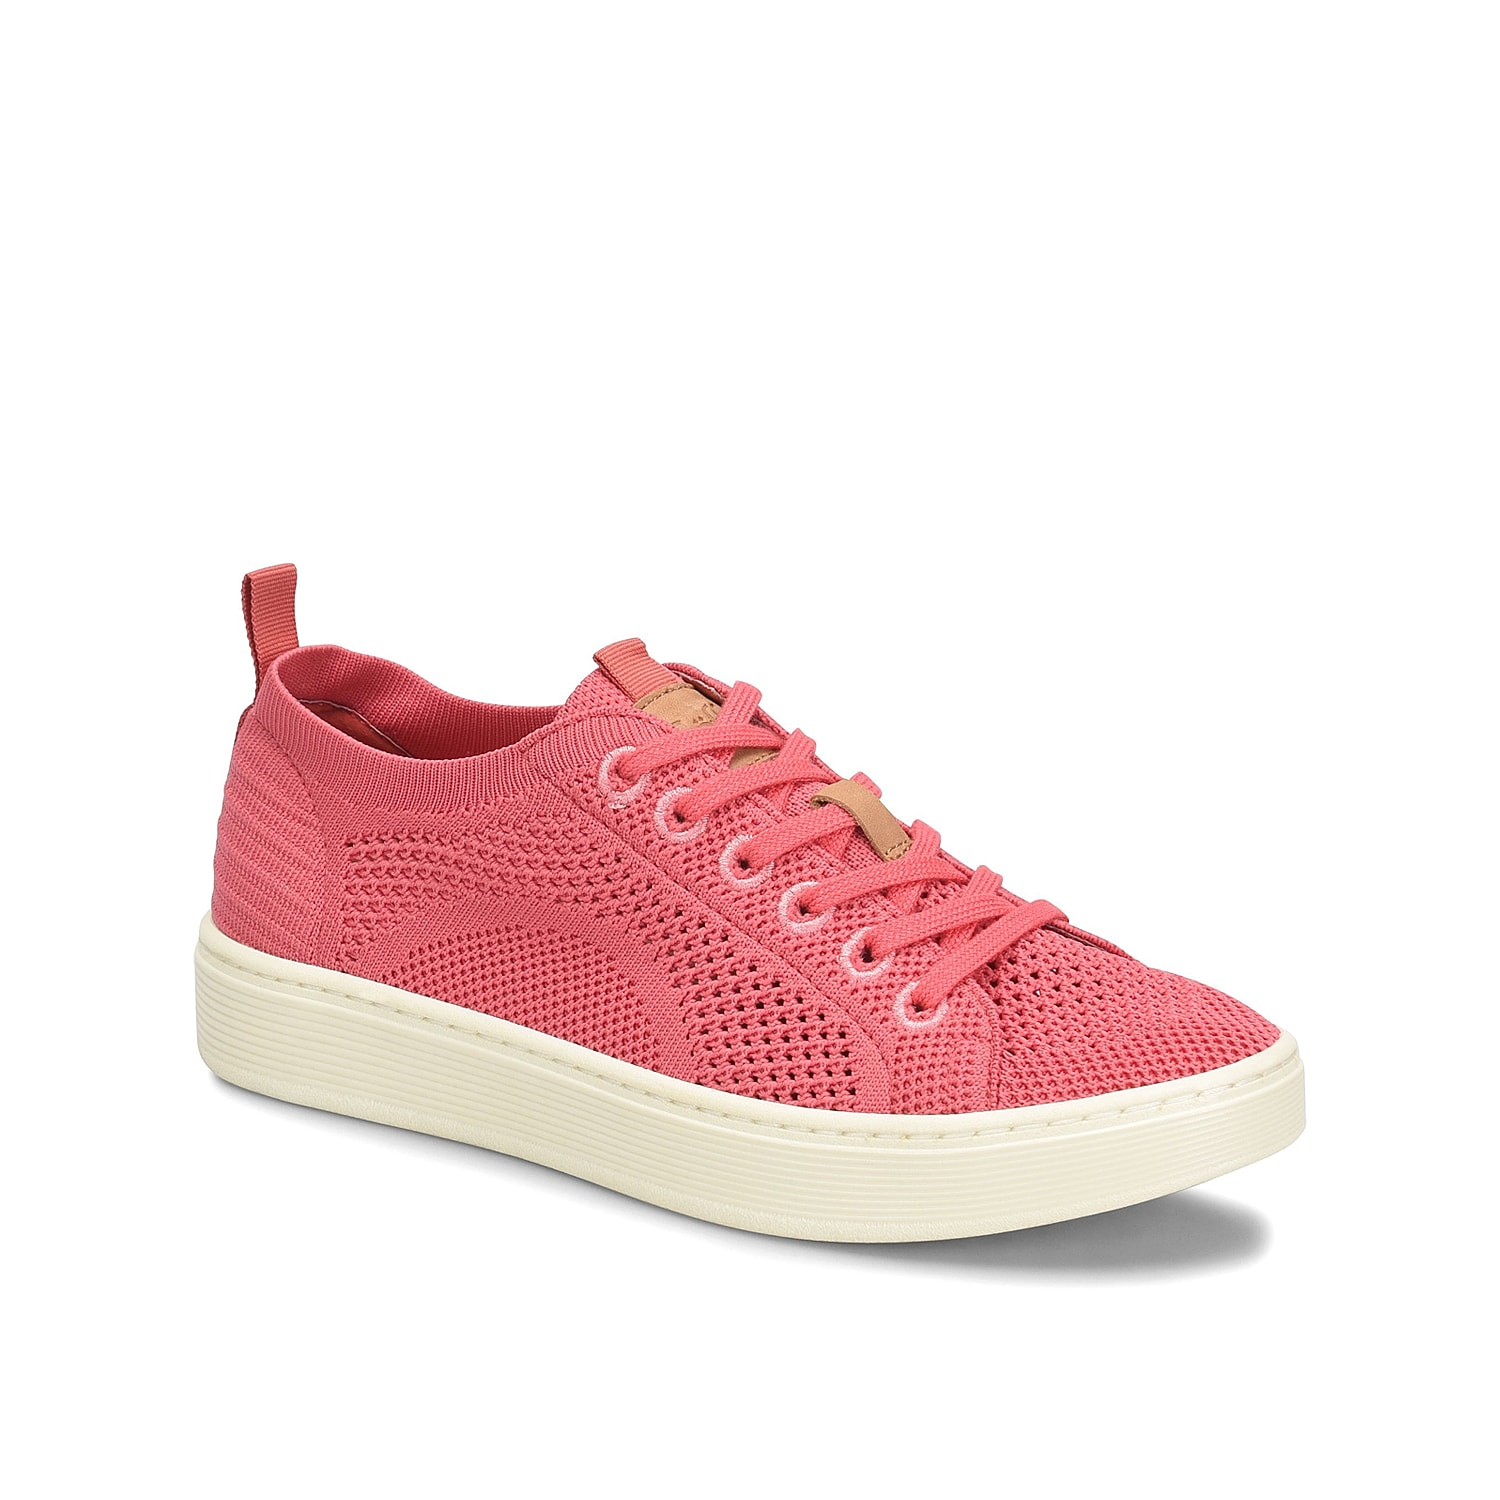 Bring a casual edge to any outfit with the Somers sneakers from Sofft. These low-tops feature a breathable design and an arch supporting footbed for daylong ease.